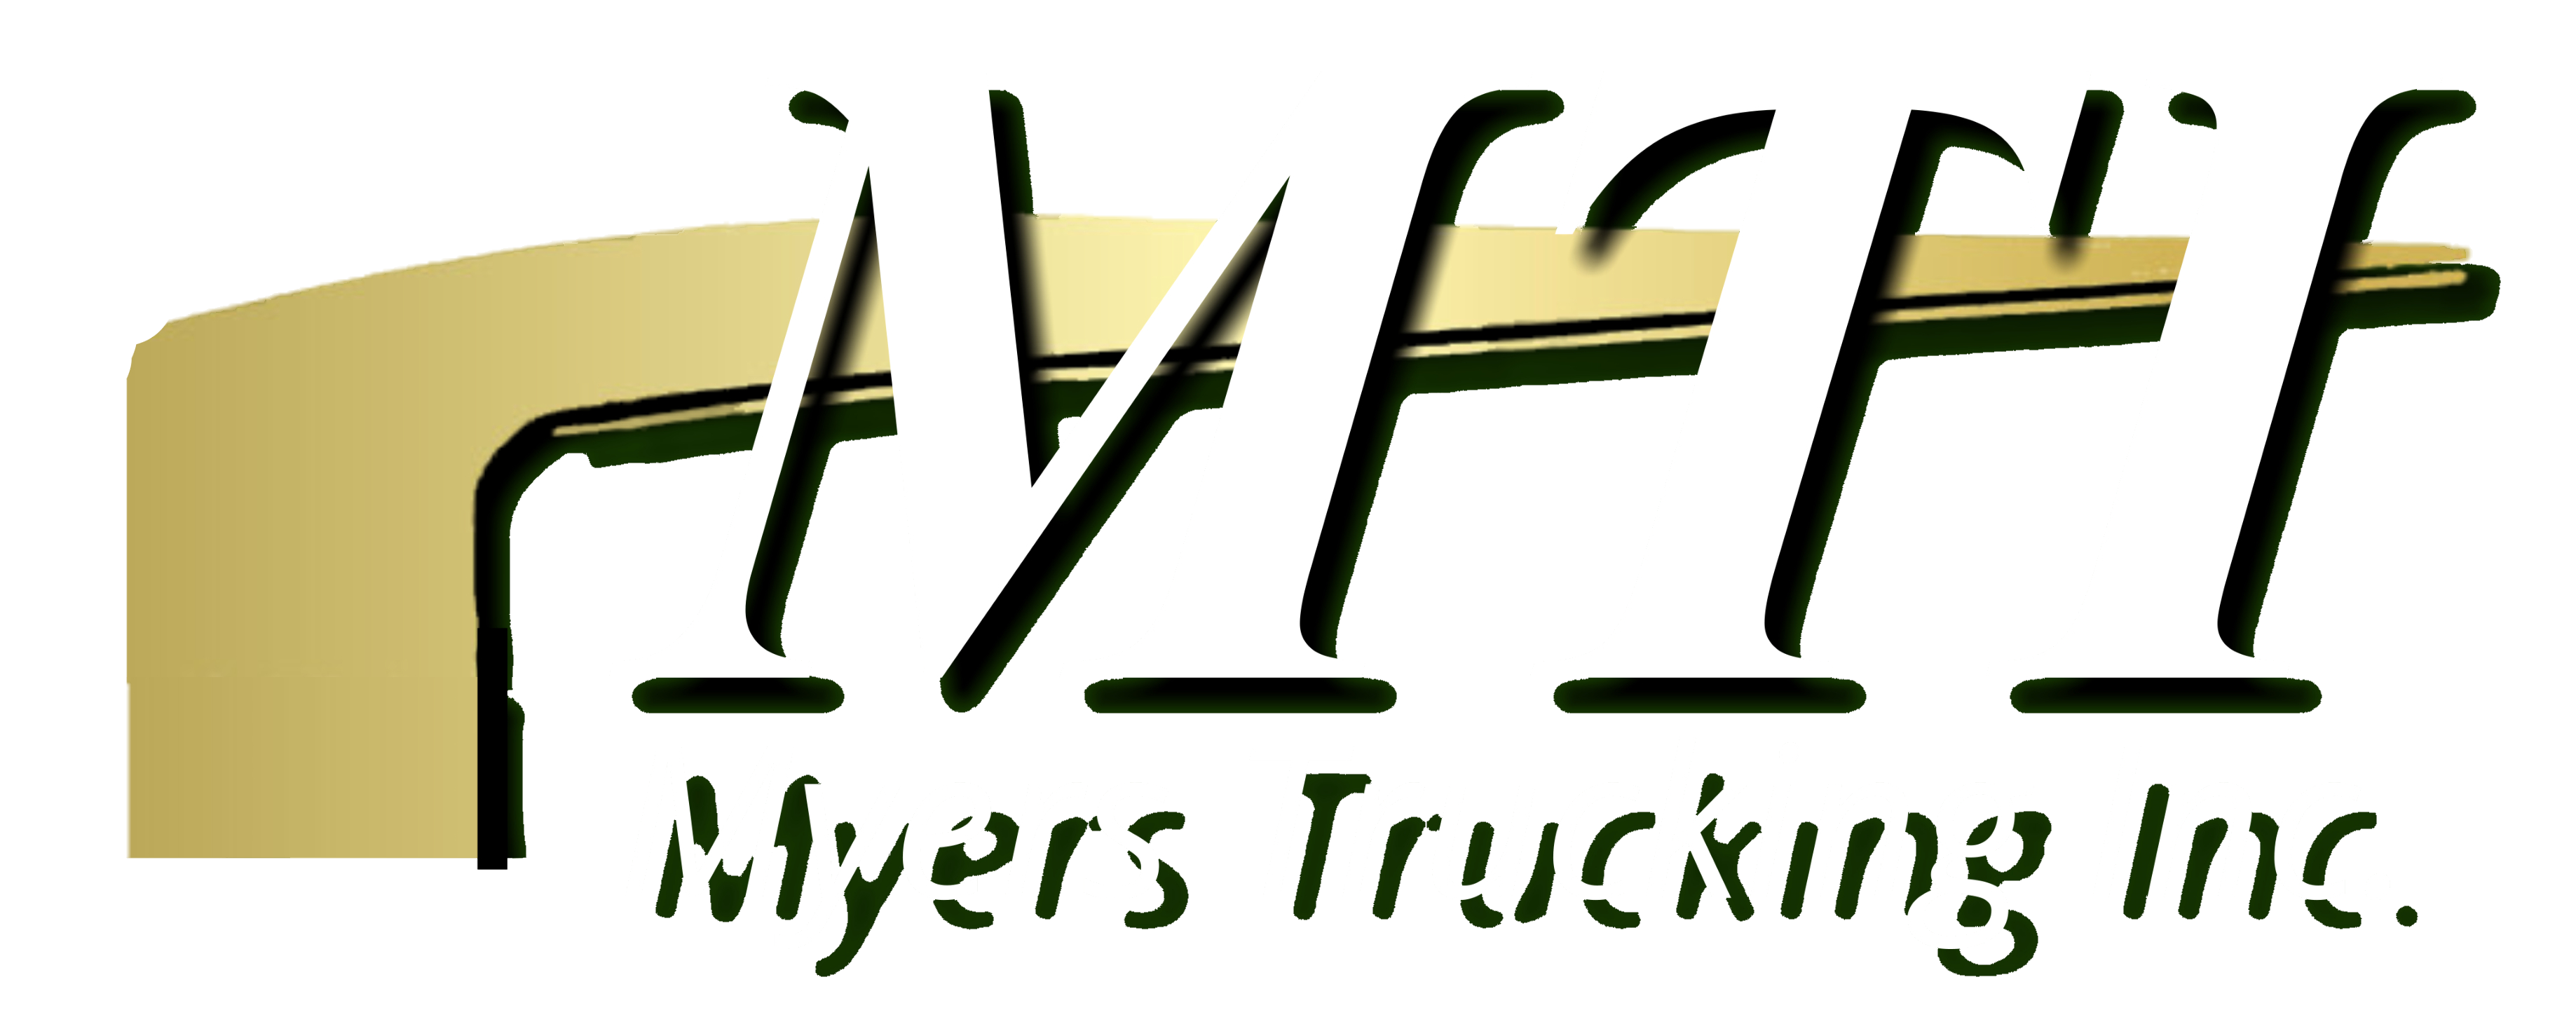 Myers Trucking Inc.